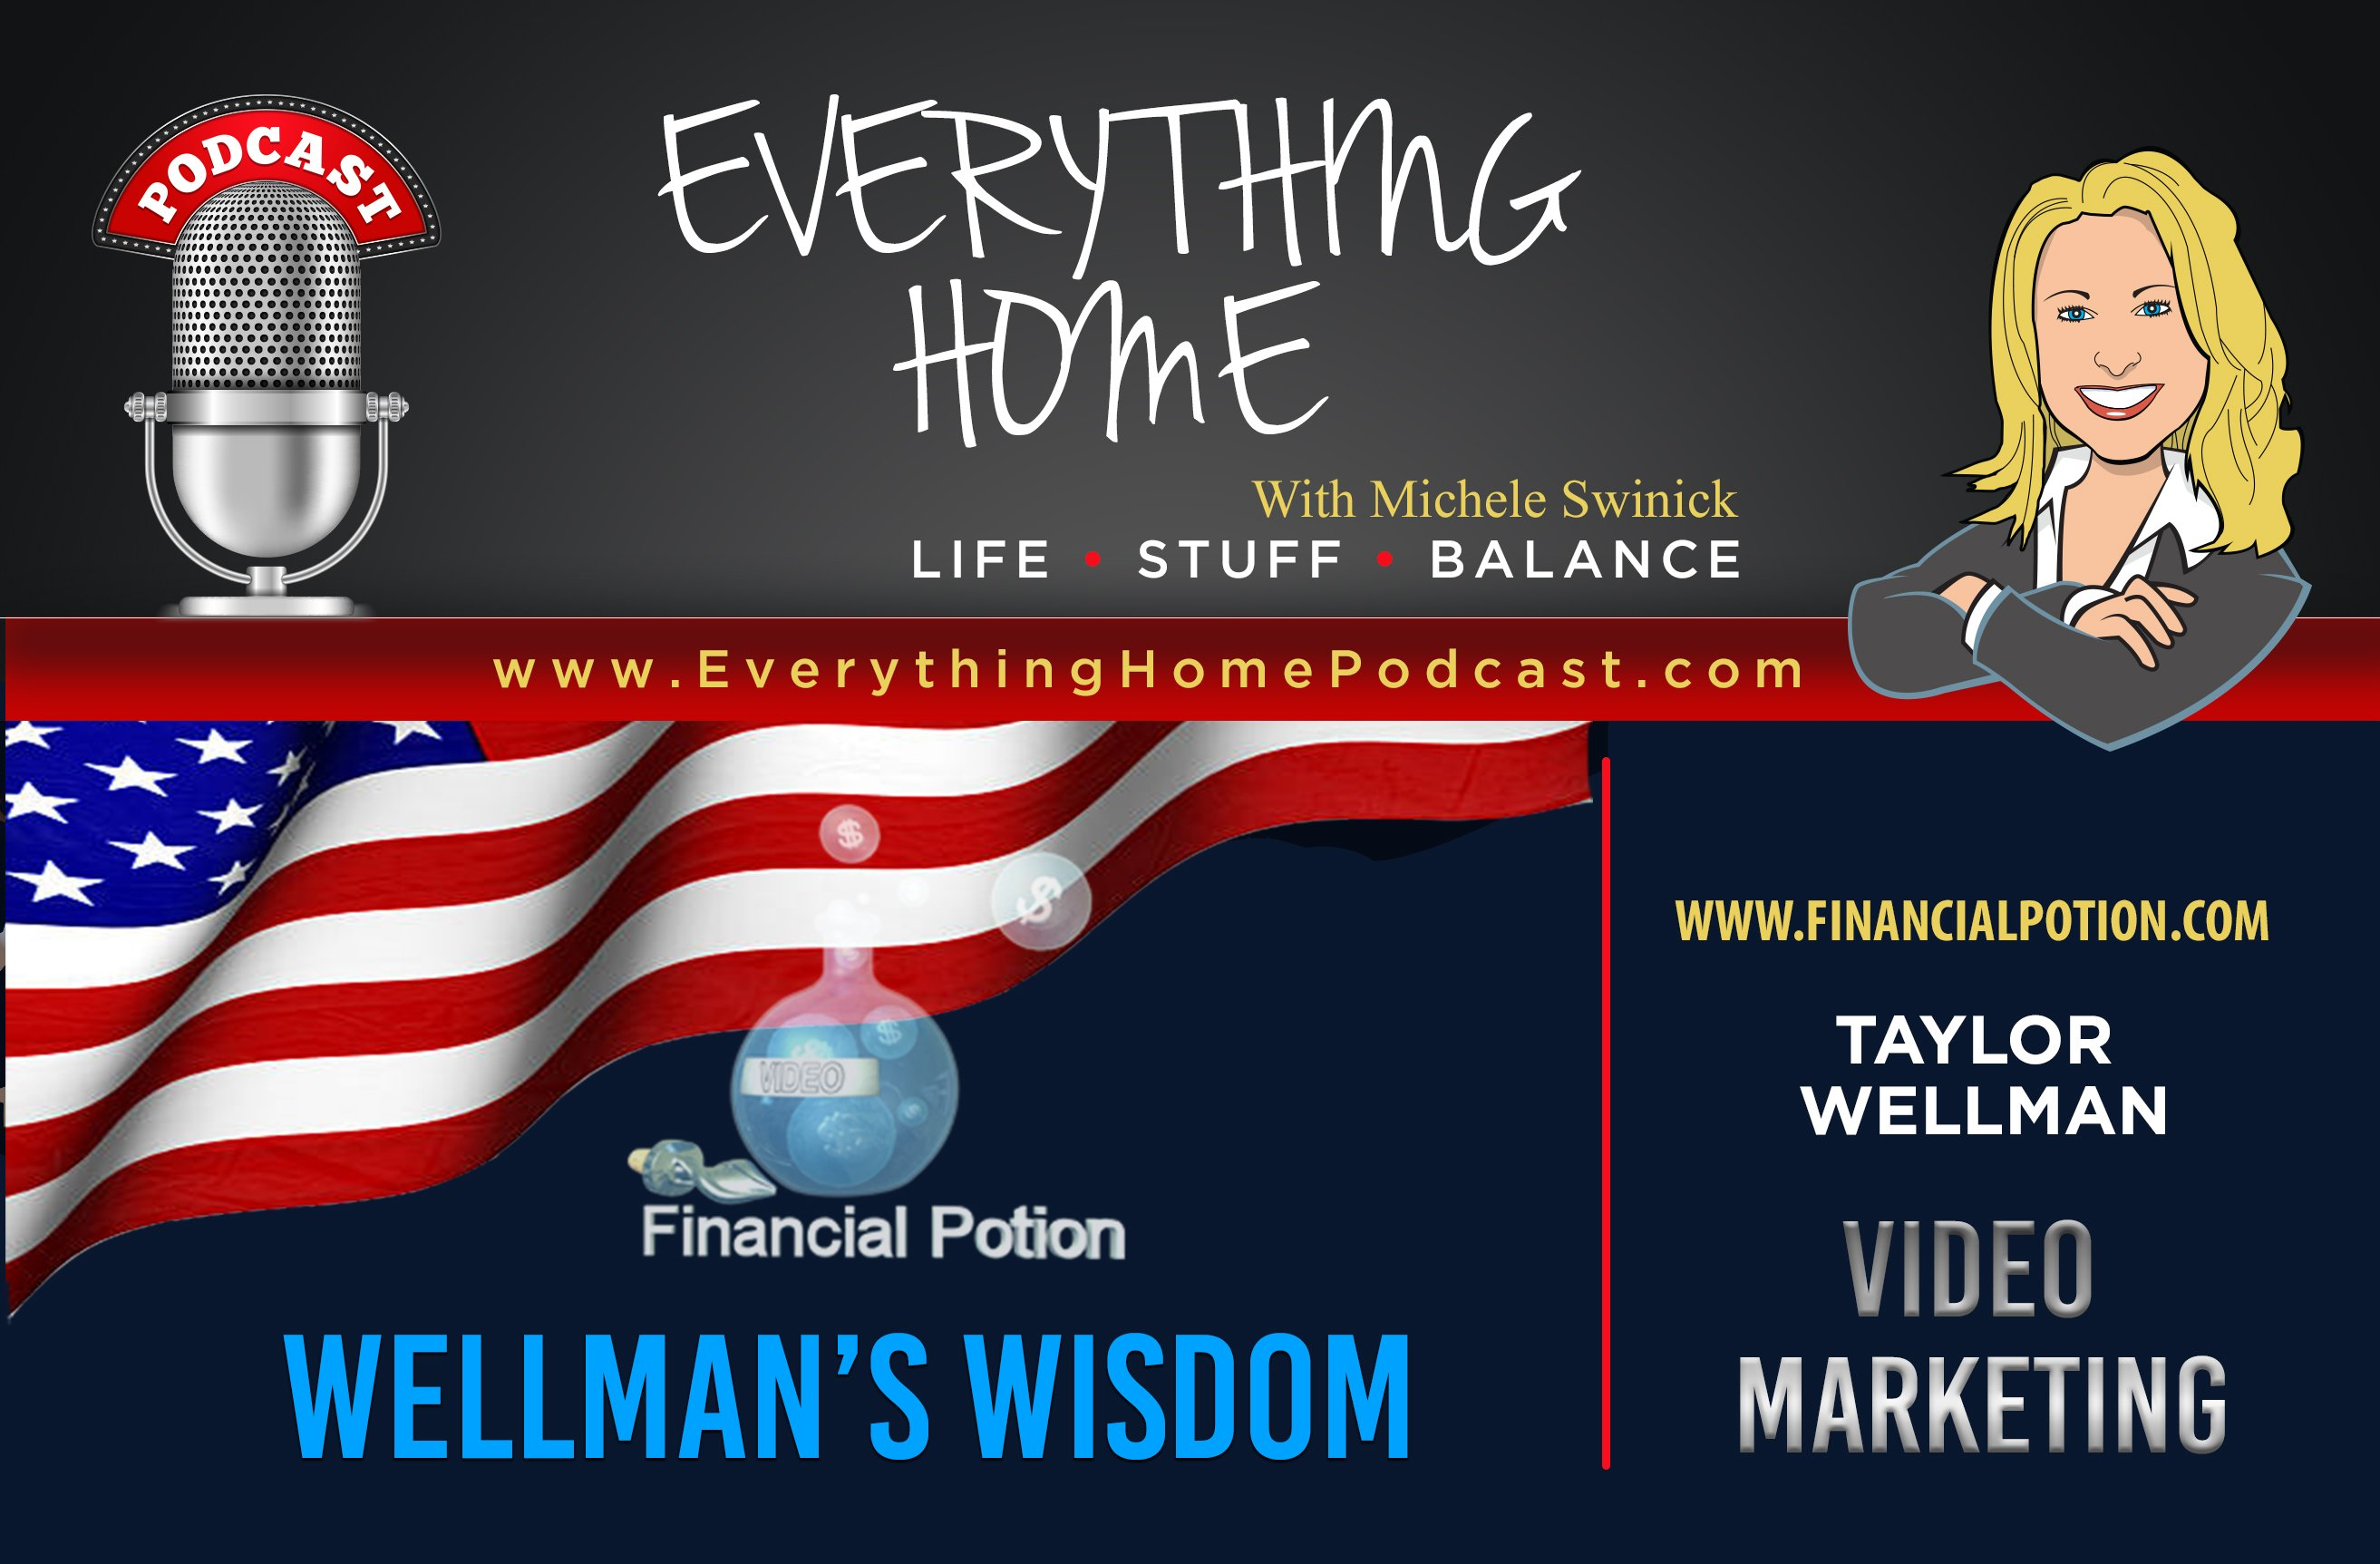 MKF -Podcast - Taylor WEllman - Video Marketing